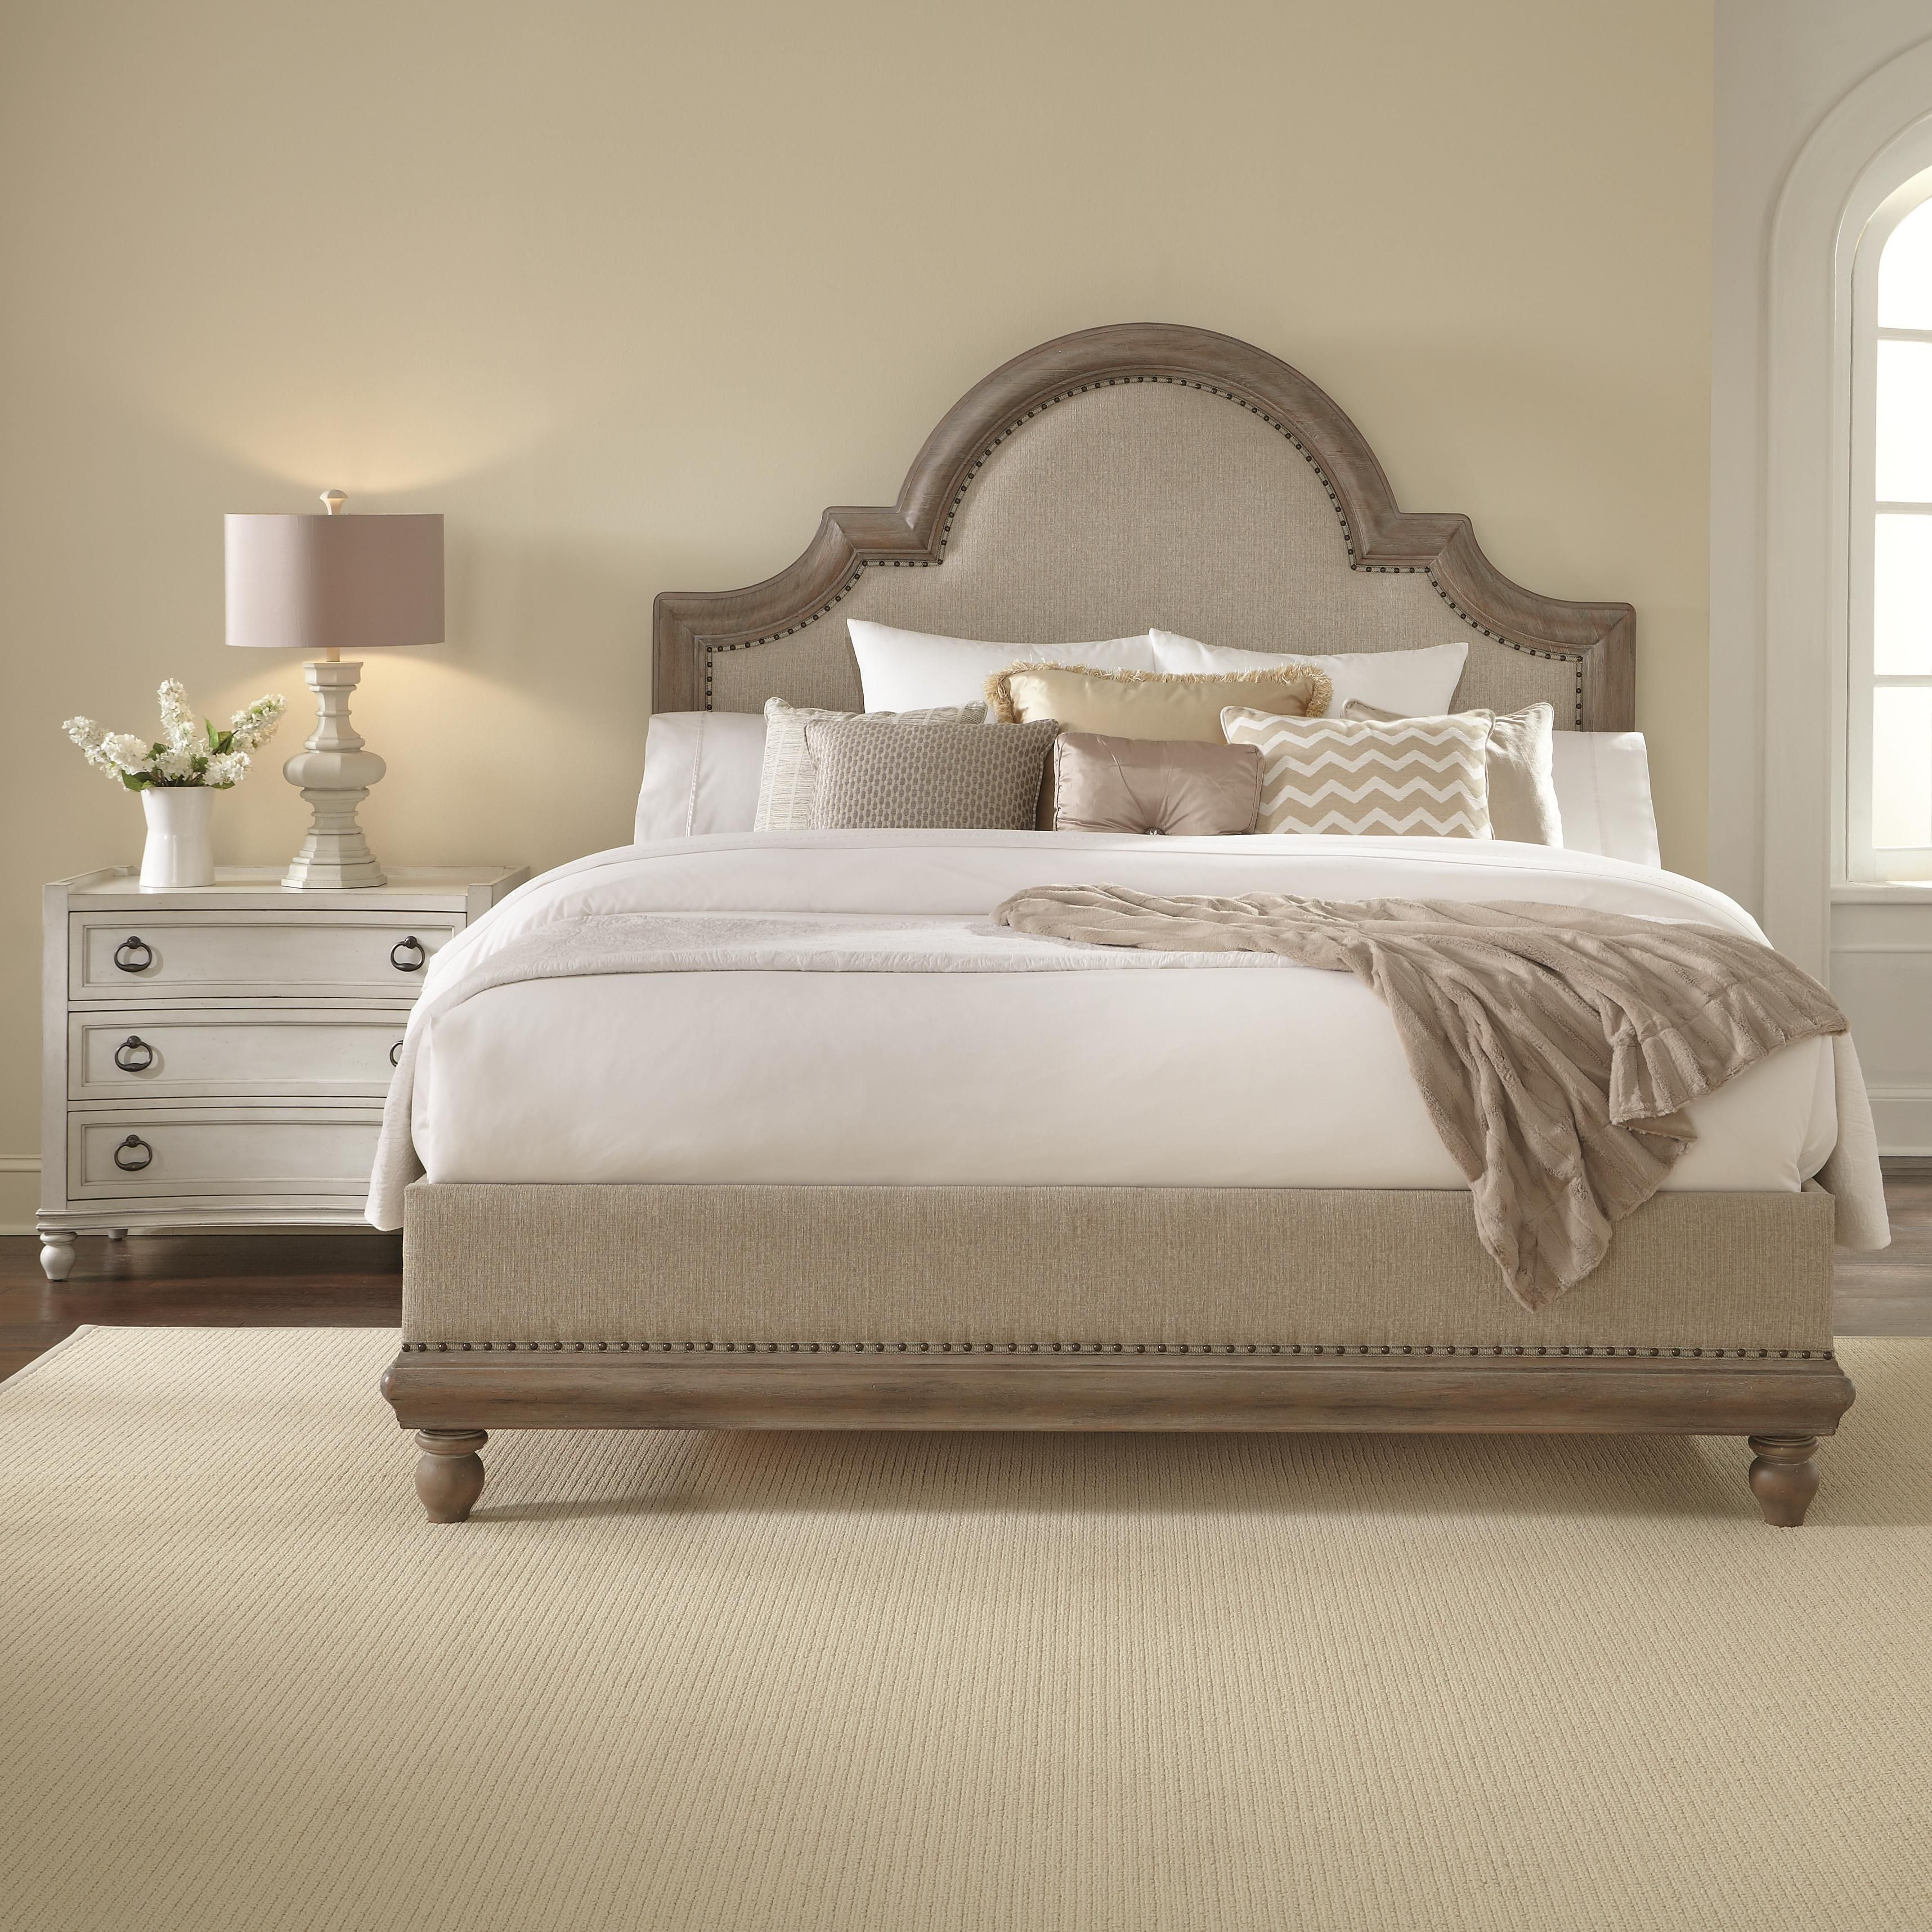 Keep It Neutral With The Dusk Finish On The Caravan Bed By